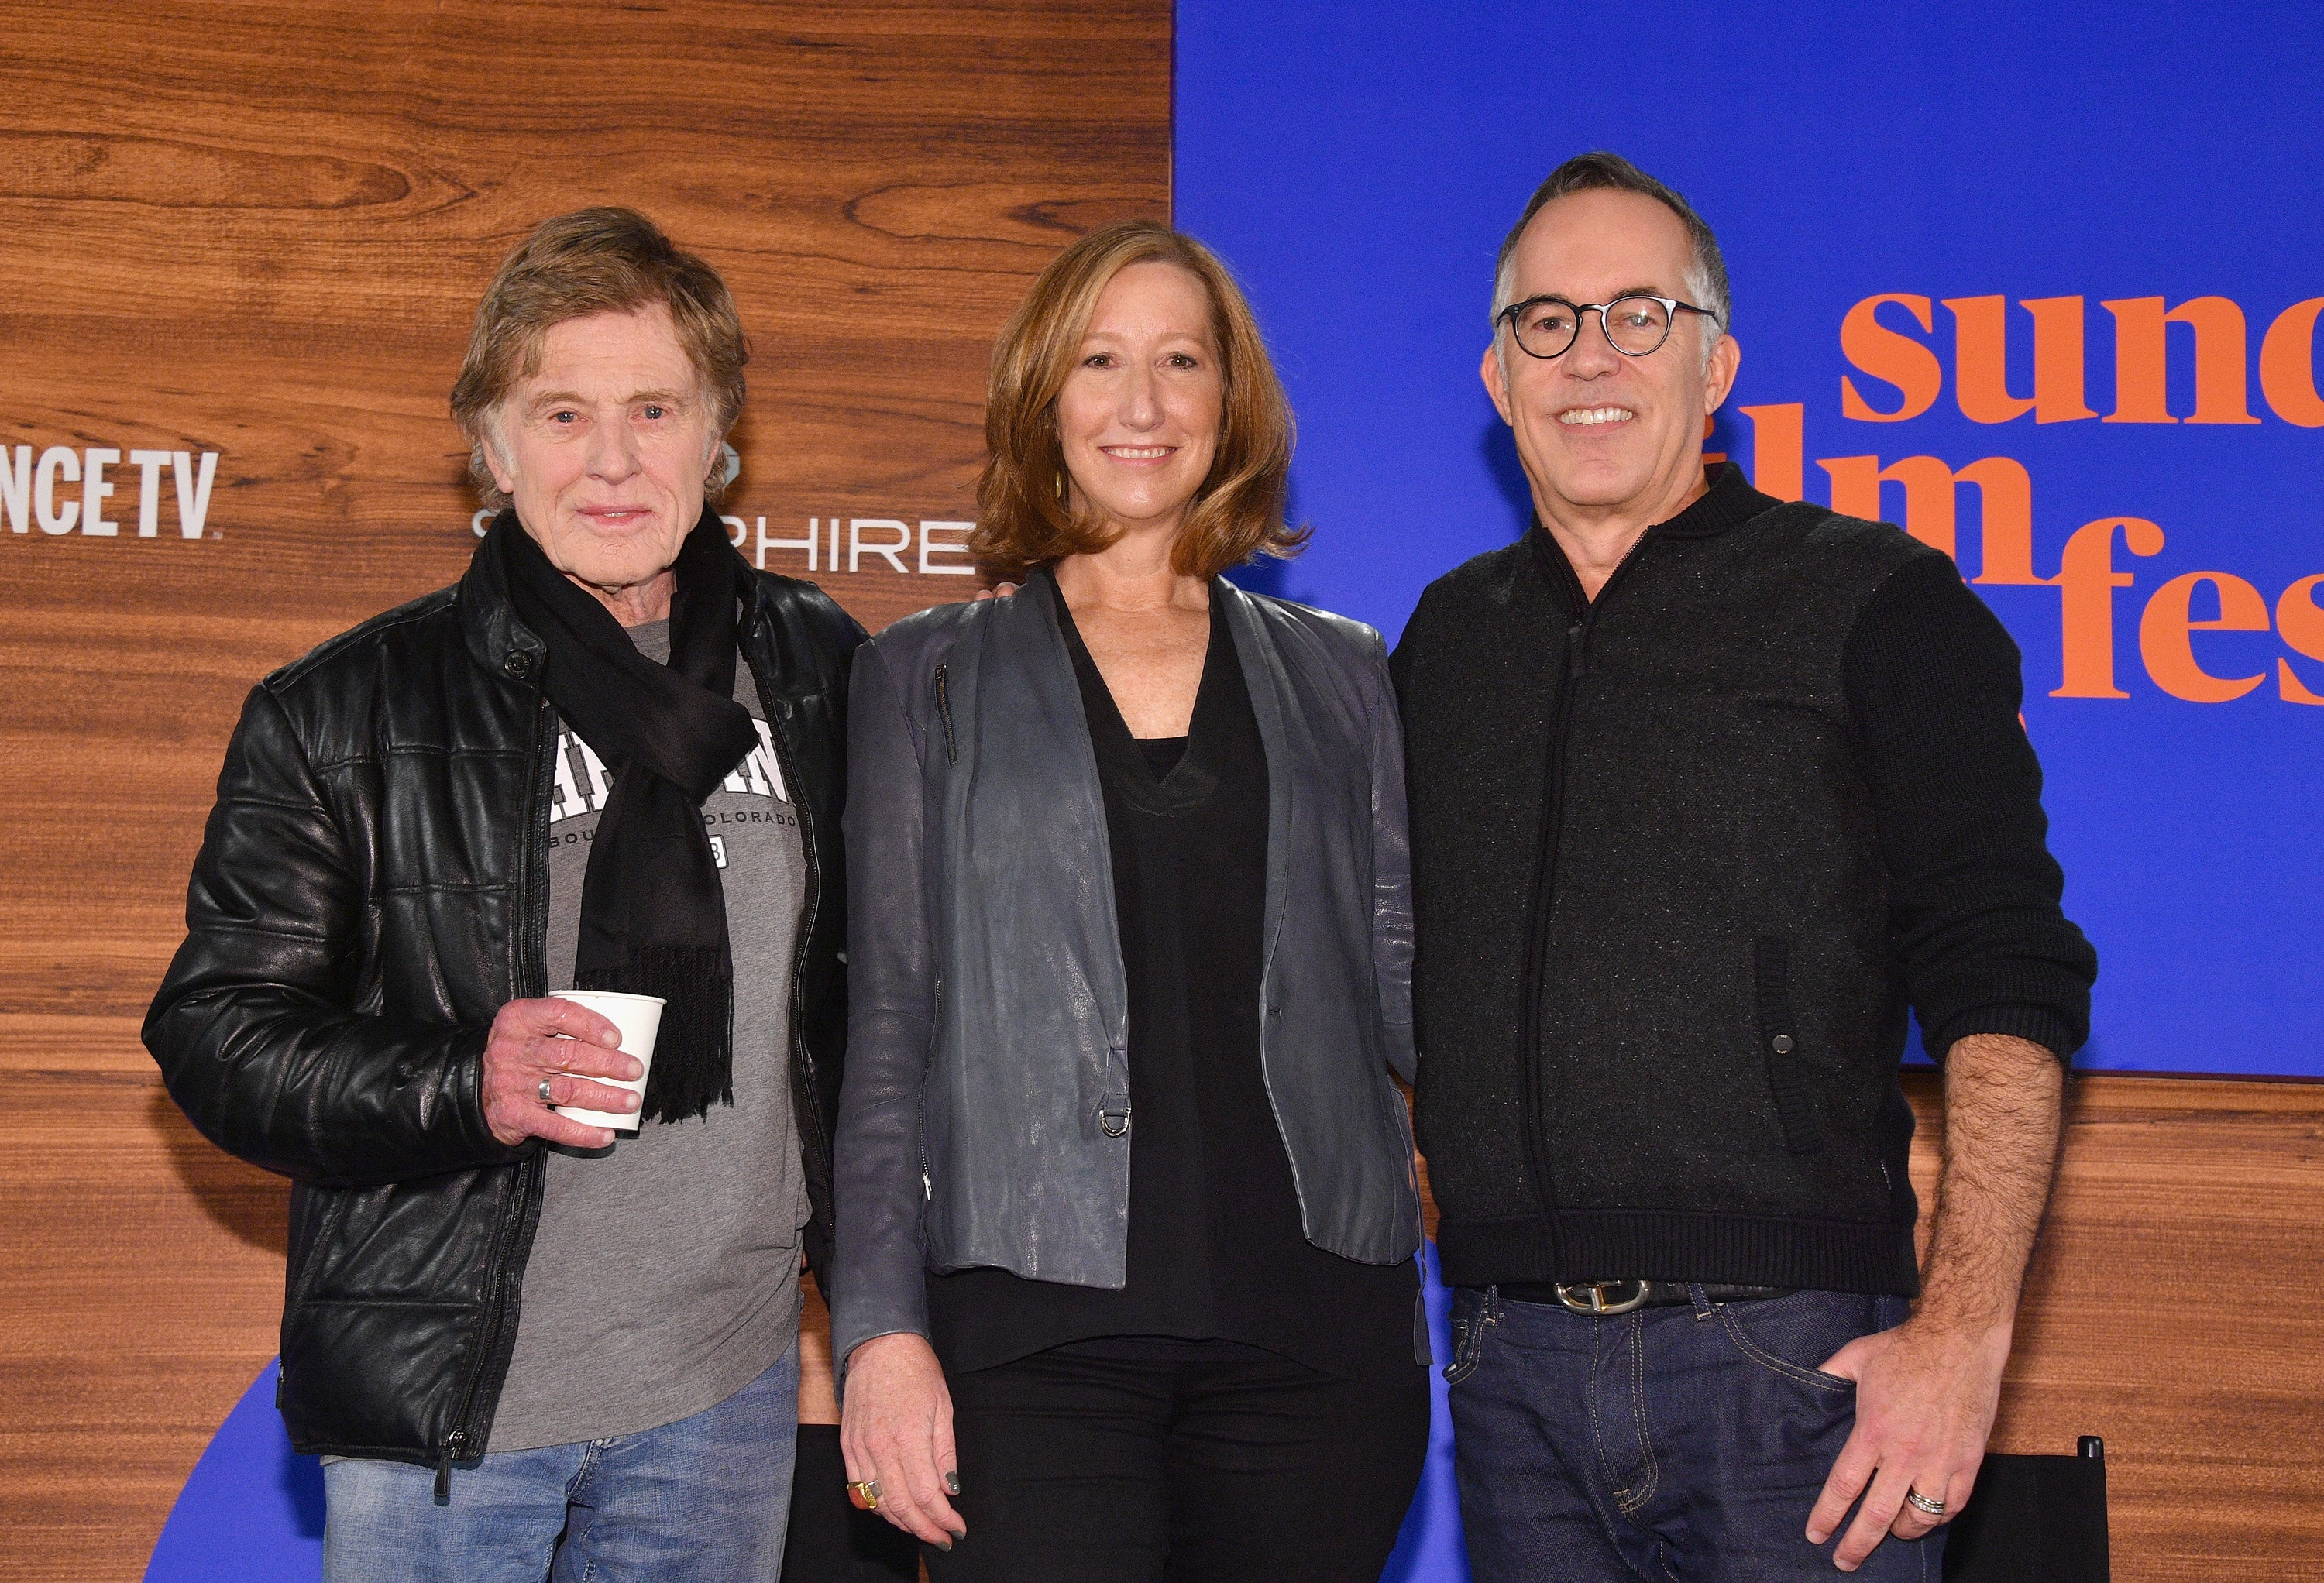 L-R) President and Founder of Sundance Institute Robert Redford, Executive Director of Sundance Institute Keri Putnam and Sundance Film Festival Director John Cooper attend the 2018 Sundance Film Festiva